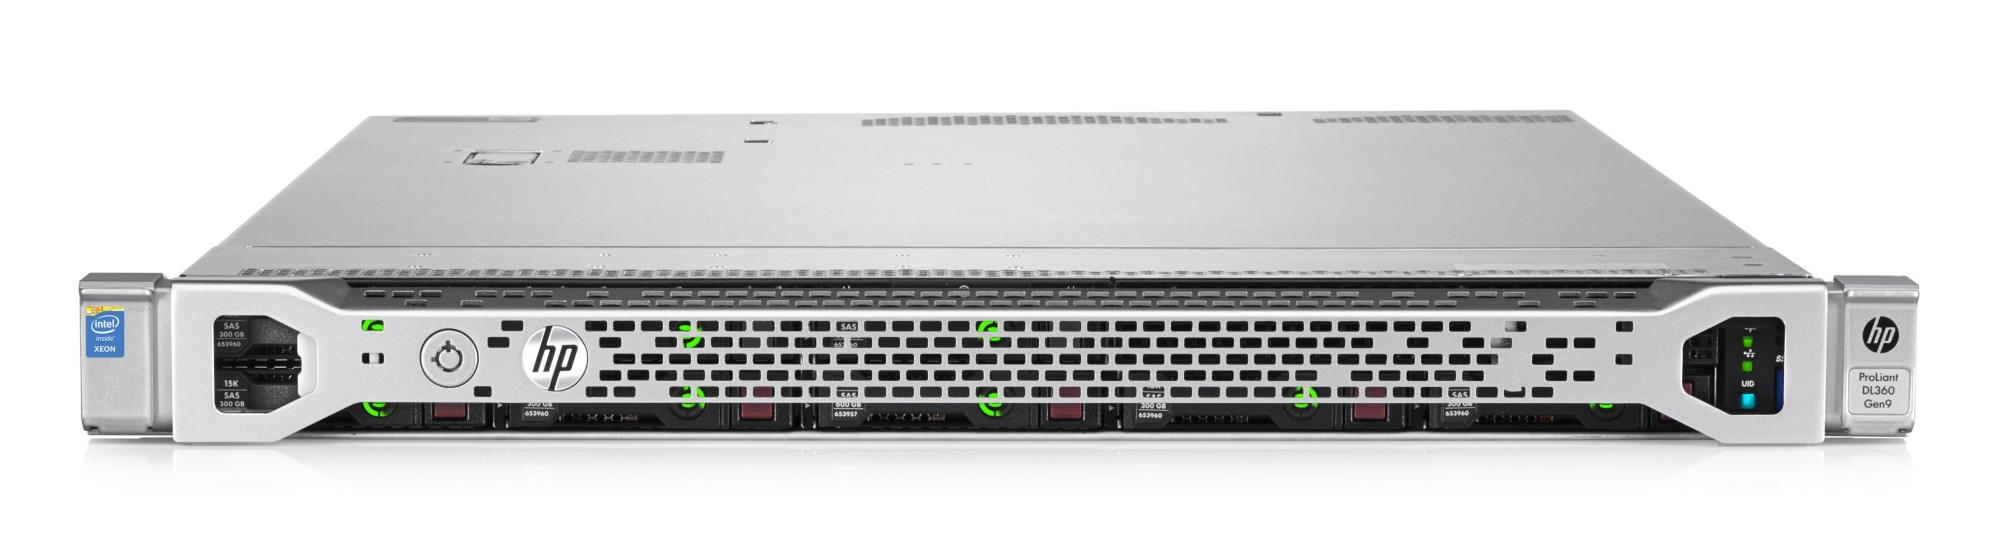 HPE 848736-B21 PROLIANT DL360 GEN9 2.4GHZ E5-2640V4 500W RACK (1U) SERVER